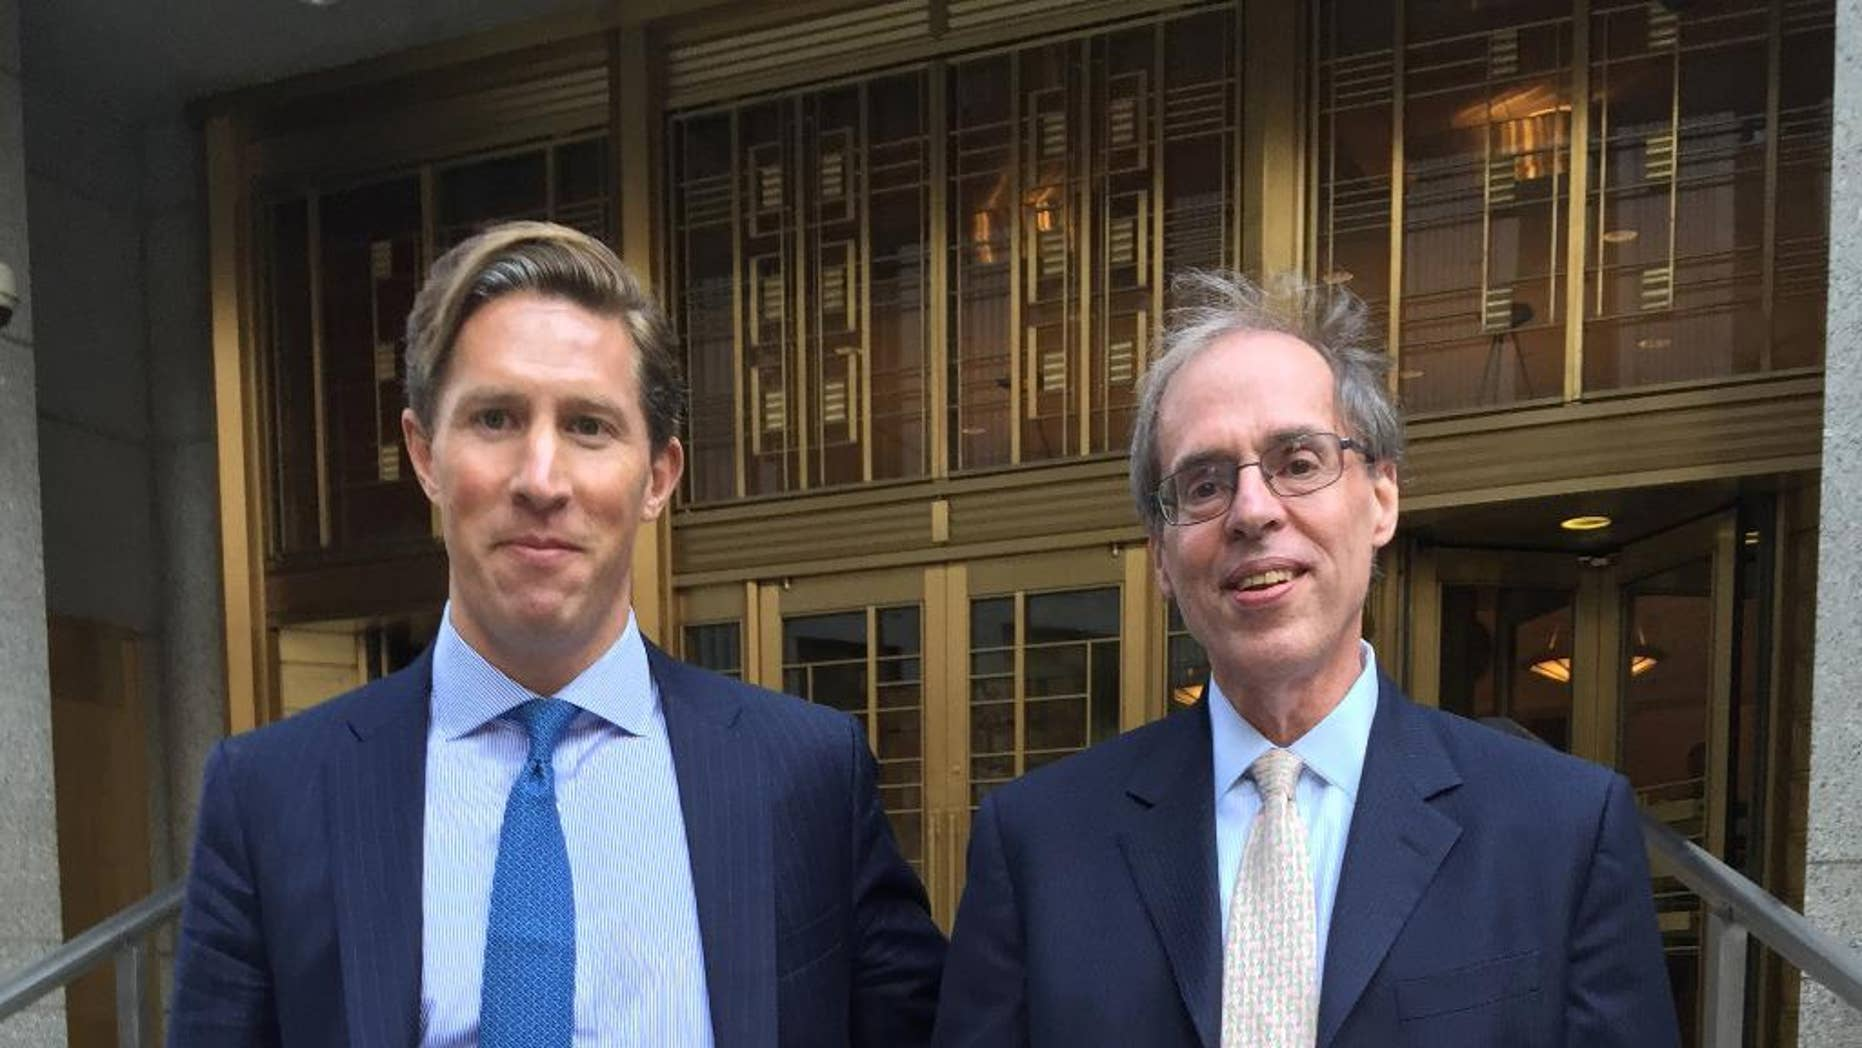 FILE- In this July 27, 2016 file photo, Sean Stewart, left, leaves Manhattan federal court in New York with his lawyer, Mark Gombiner, after opening statements in Stewart's insider trading trial. The Yale-educated investment banker was convicted of insider trading charges Wednesday, Aug. 17, 2016, after a jury concluded he gave tips about mergers and acquisitions to his father, enabling over $1 million in illegal profits. (AP Photo/Larry Neumeister, File)